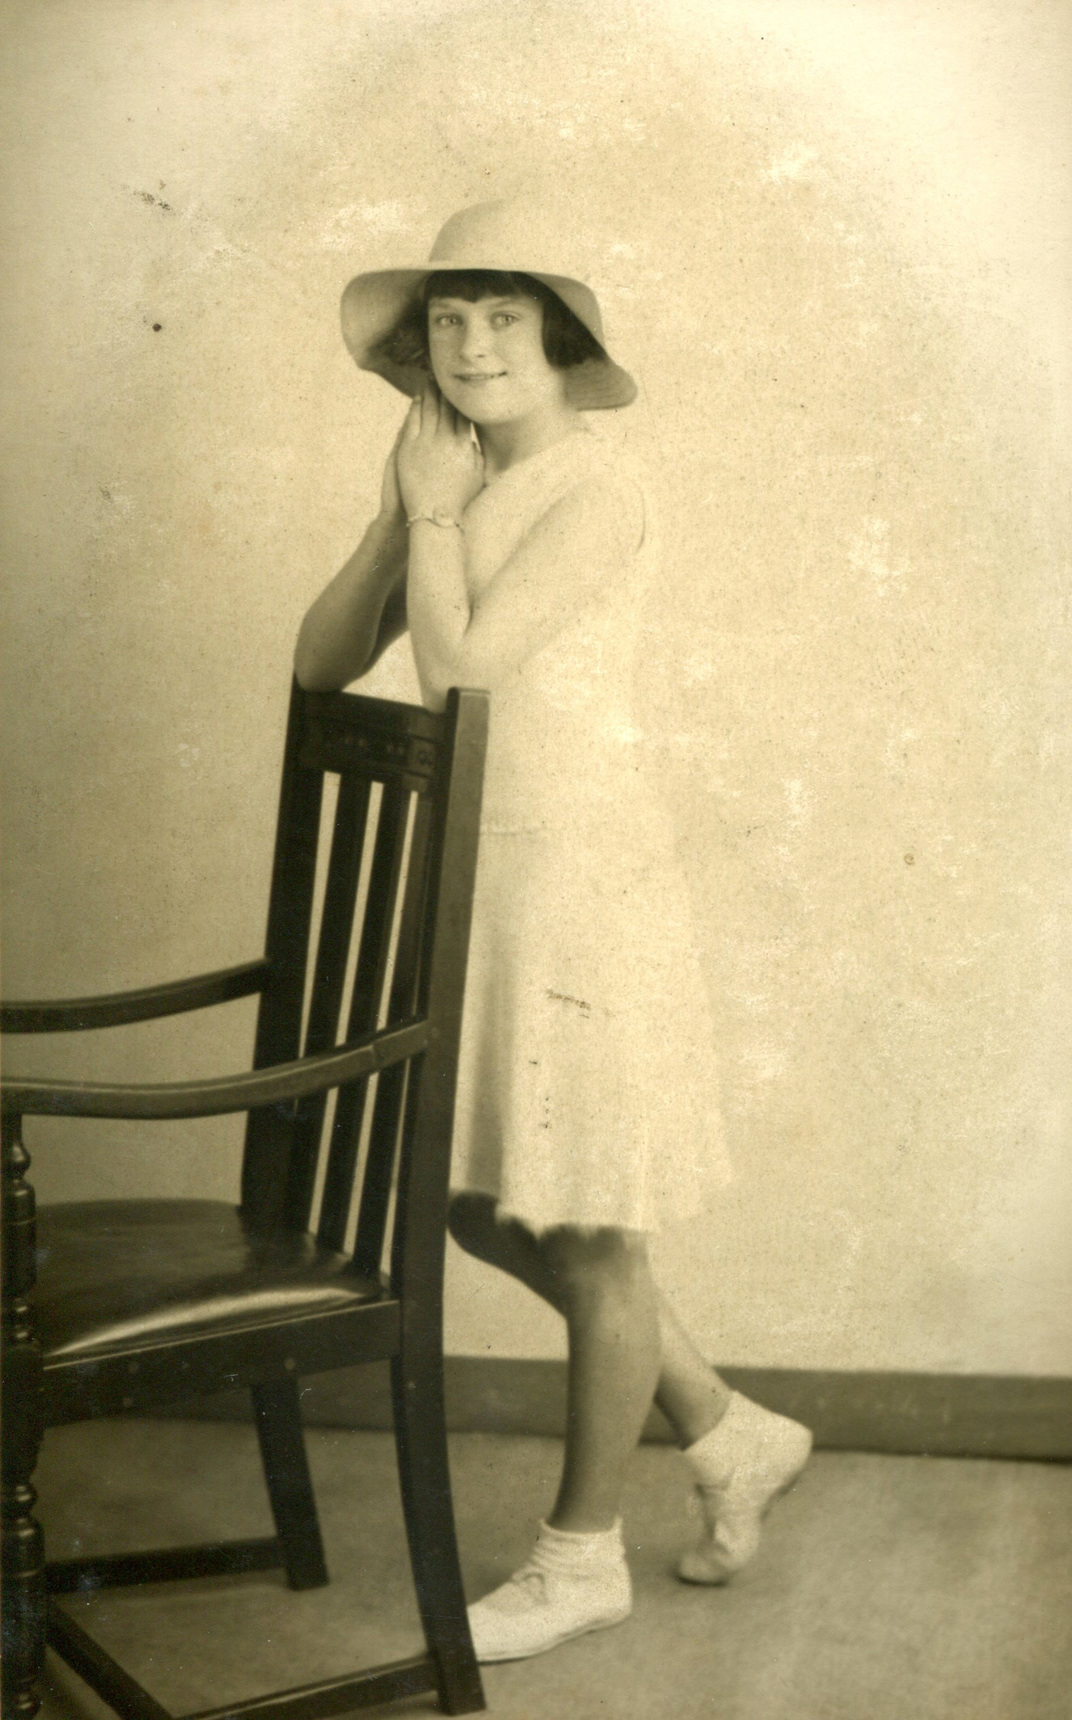 Studio Portrait Girl Leaning On Back Of Chair c.1933